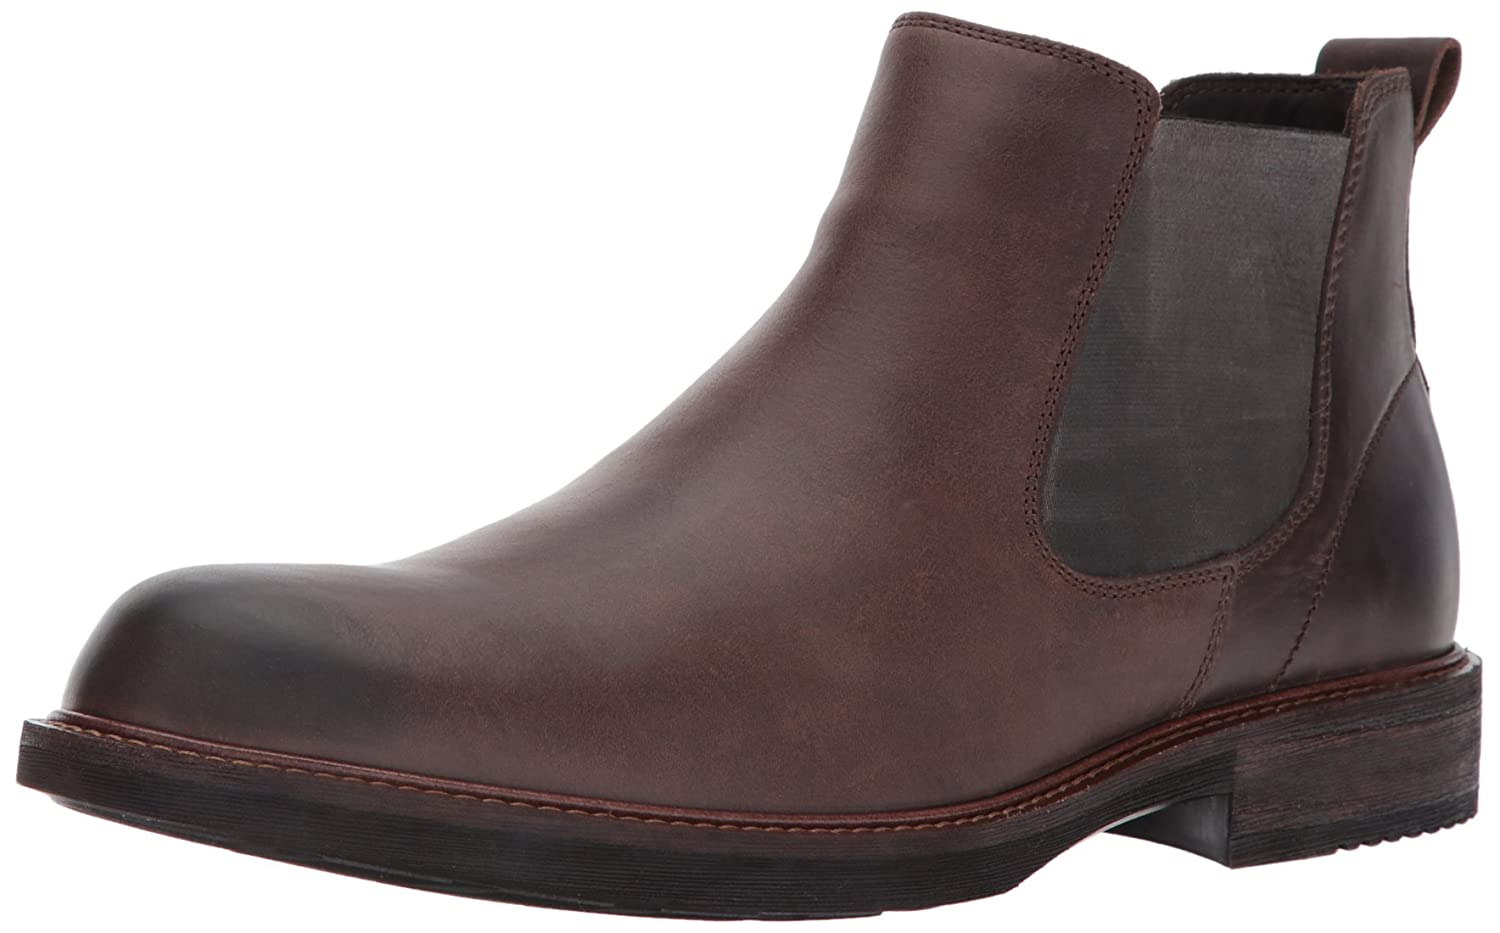 ECCO Shoes Men's Kenton Chelsea Boots 512034